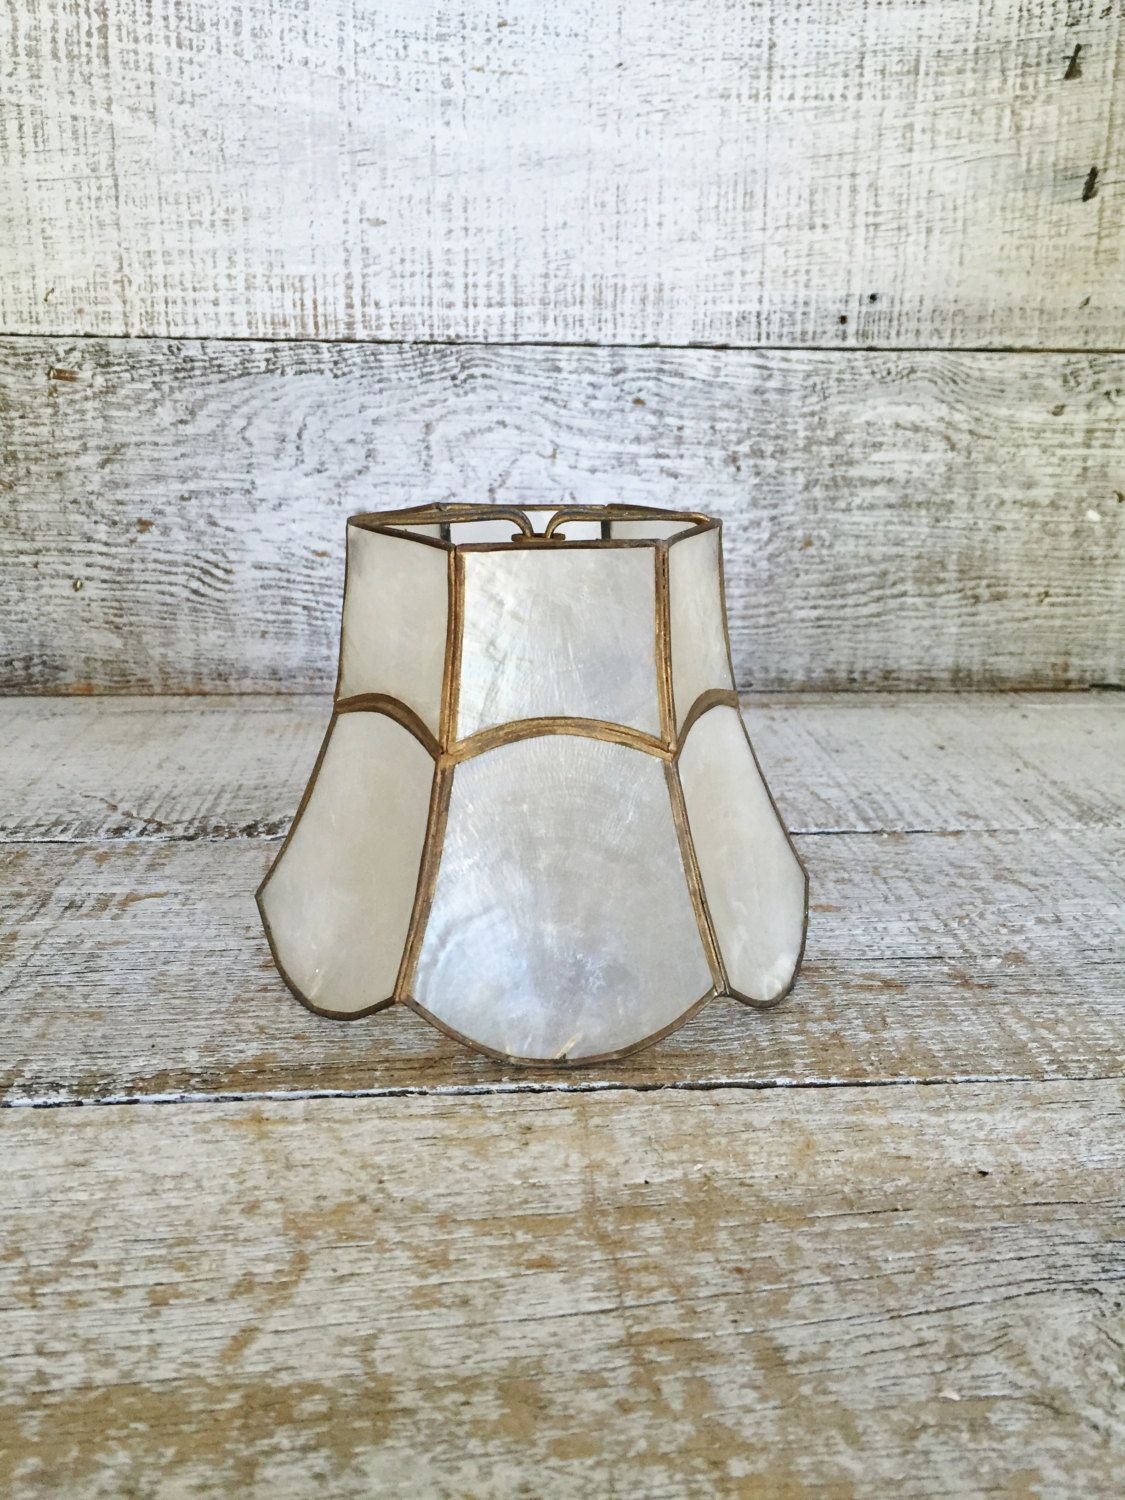 Capiz Shell Lampshade Small Shell Lamp Shade Small Mid Century Clip On Lamp Shades Chandelier Lampshades Seashell And Brass La Shell Lamp Brass Lamp Lamp Shade